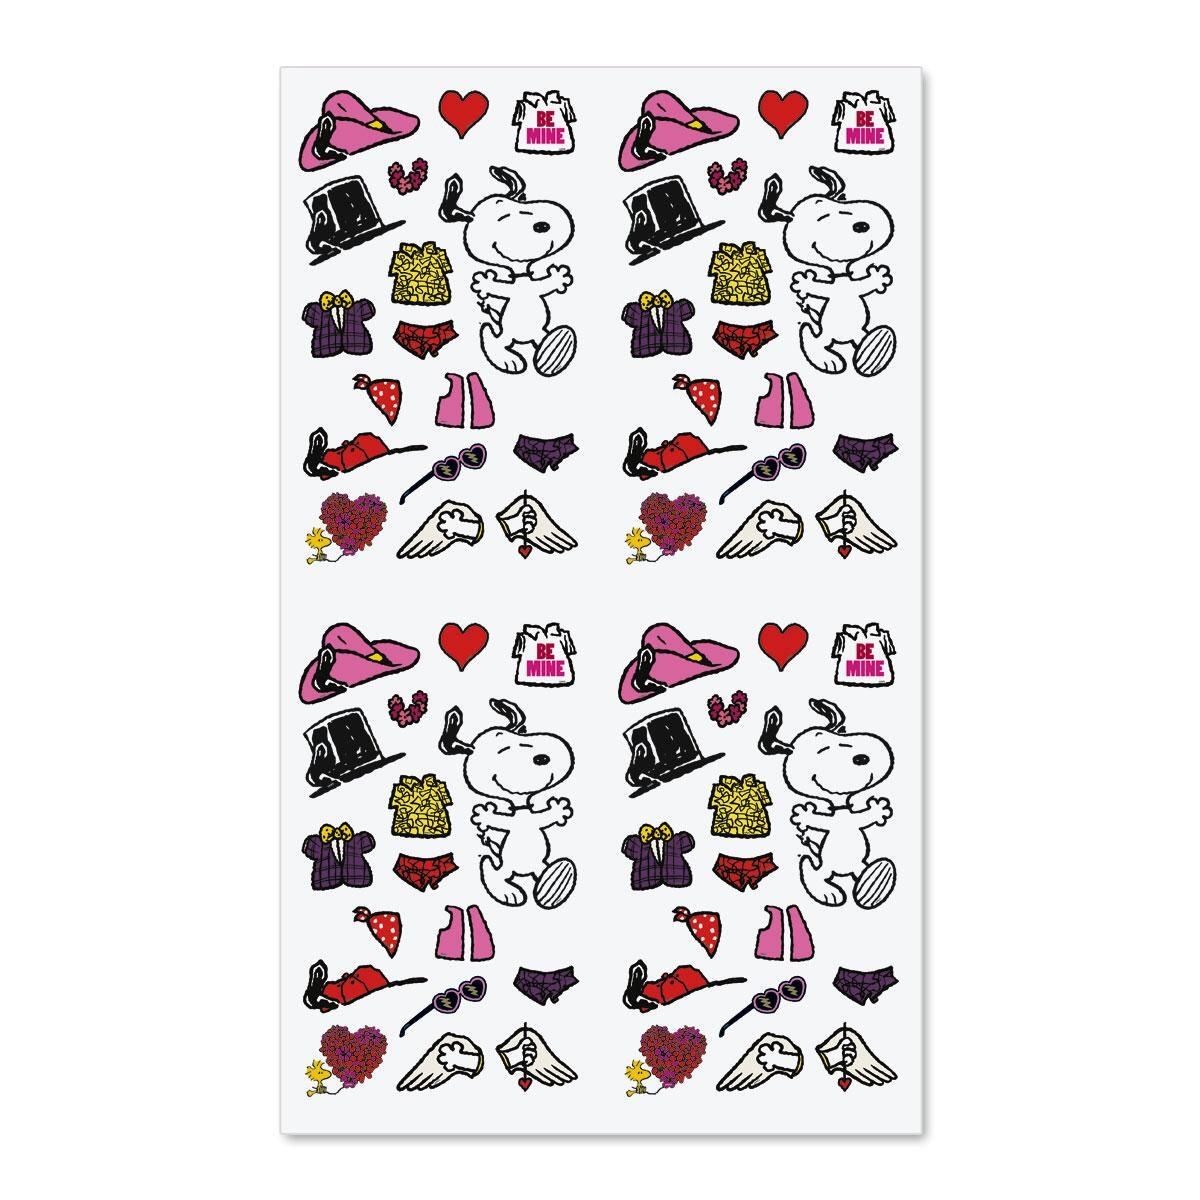 Snoopy™ Dress Up Stickers